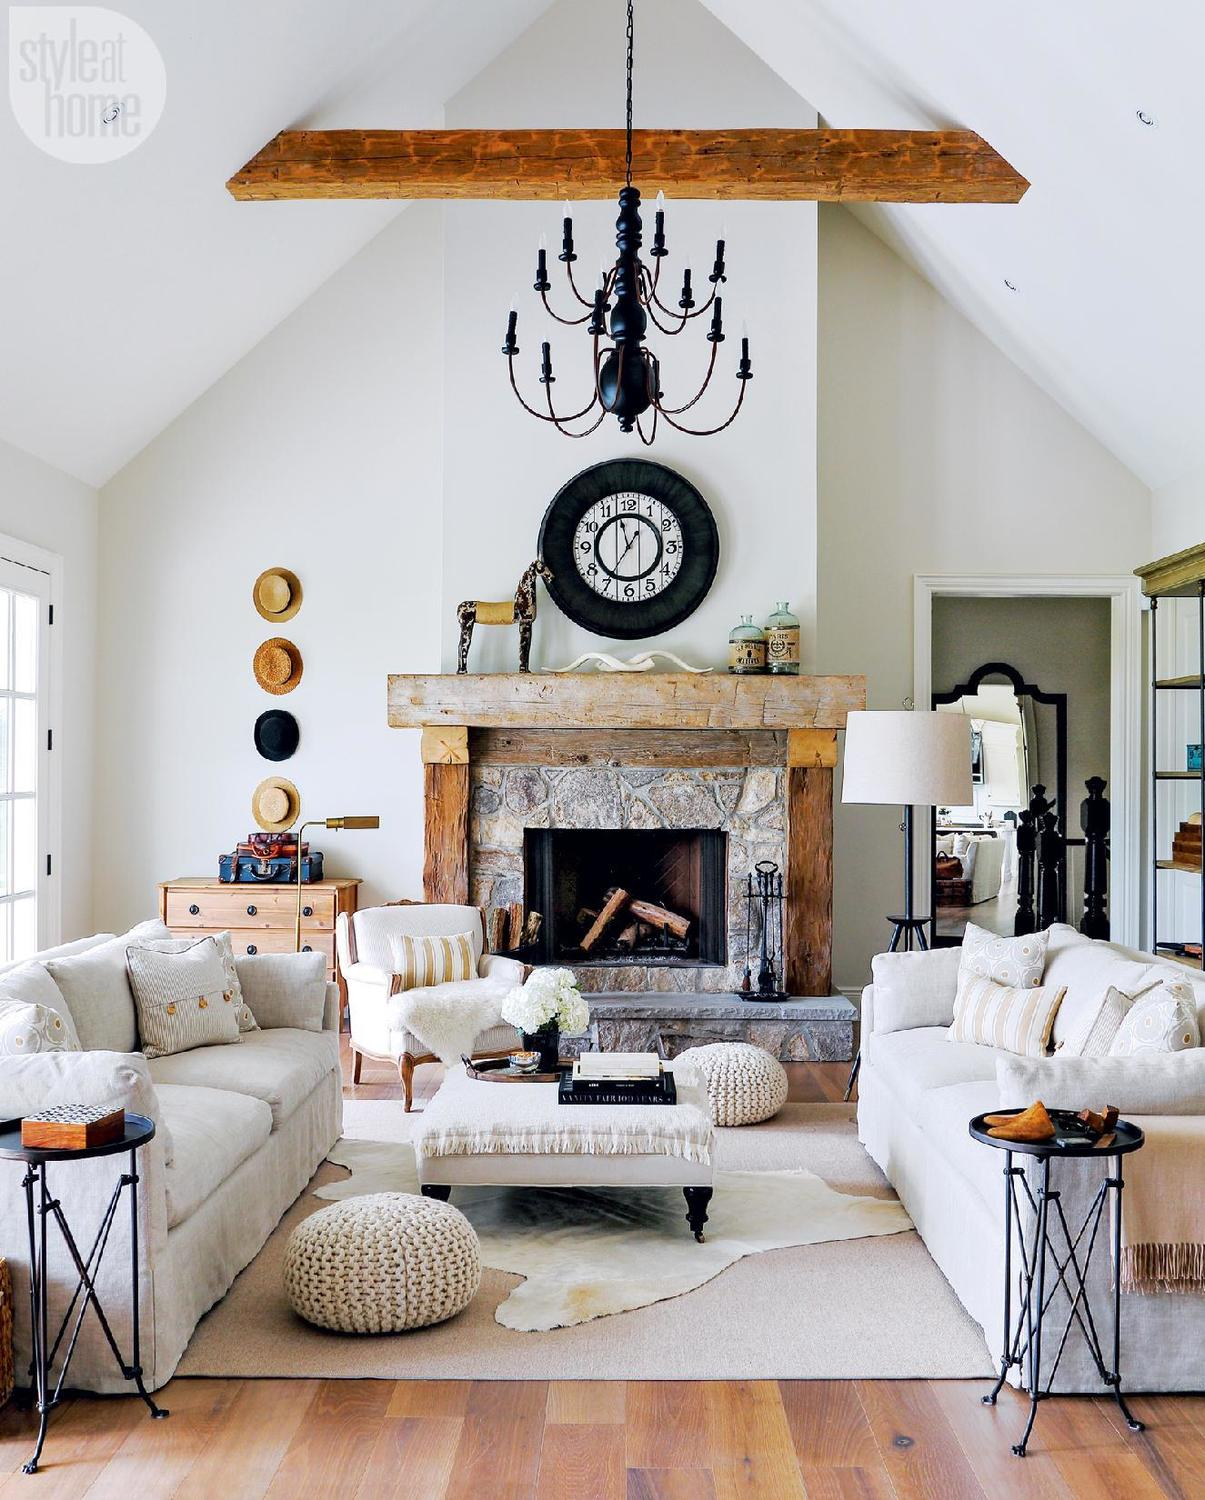 stone-wood-mantle-fireplace-christmas-holiday-decor-ideas-inspiration-cow-hide-carpet-cottage-look-cozy-living-room-design